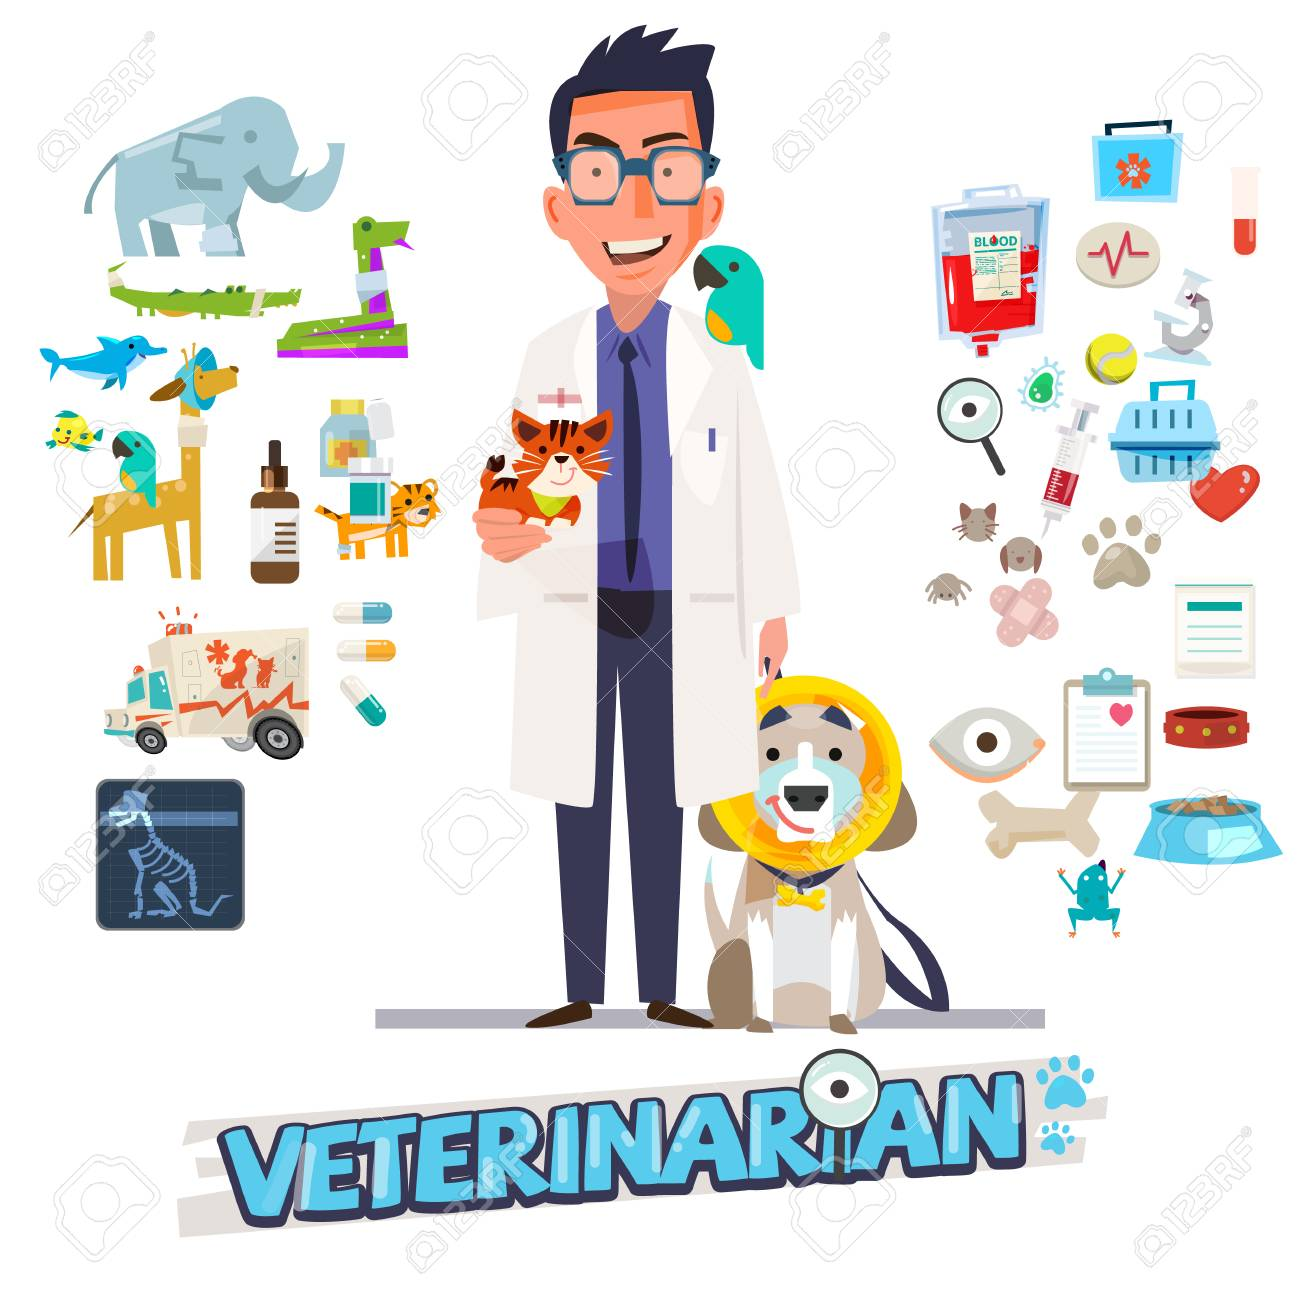 Veterinarian. Character design with icon set, zoological medicine - vector illustration - 88525622